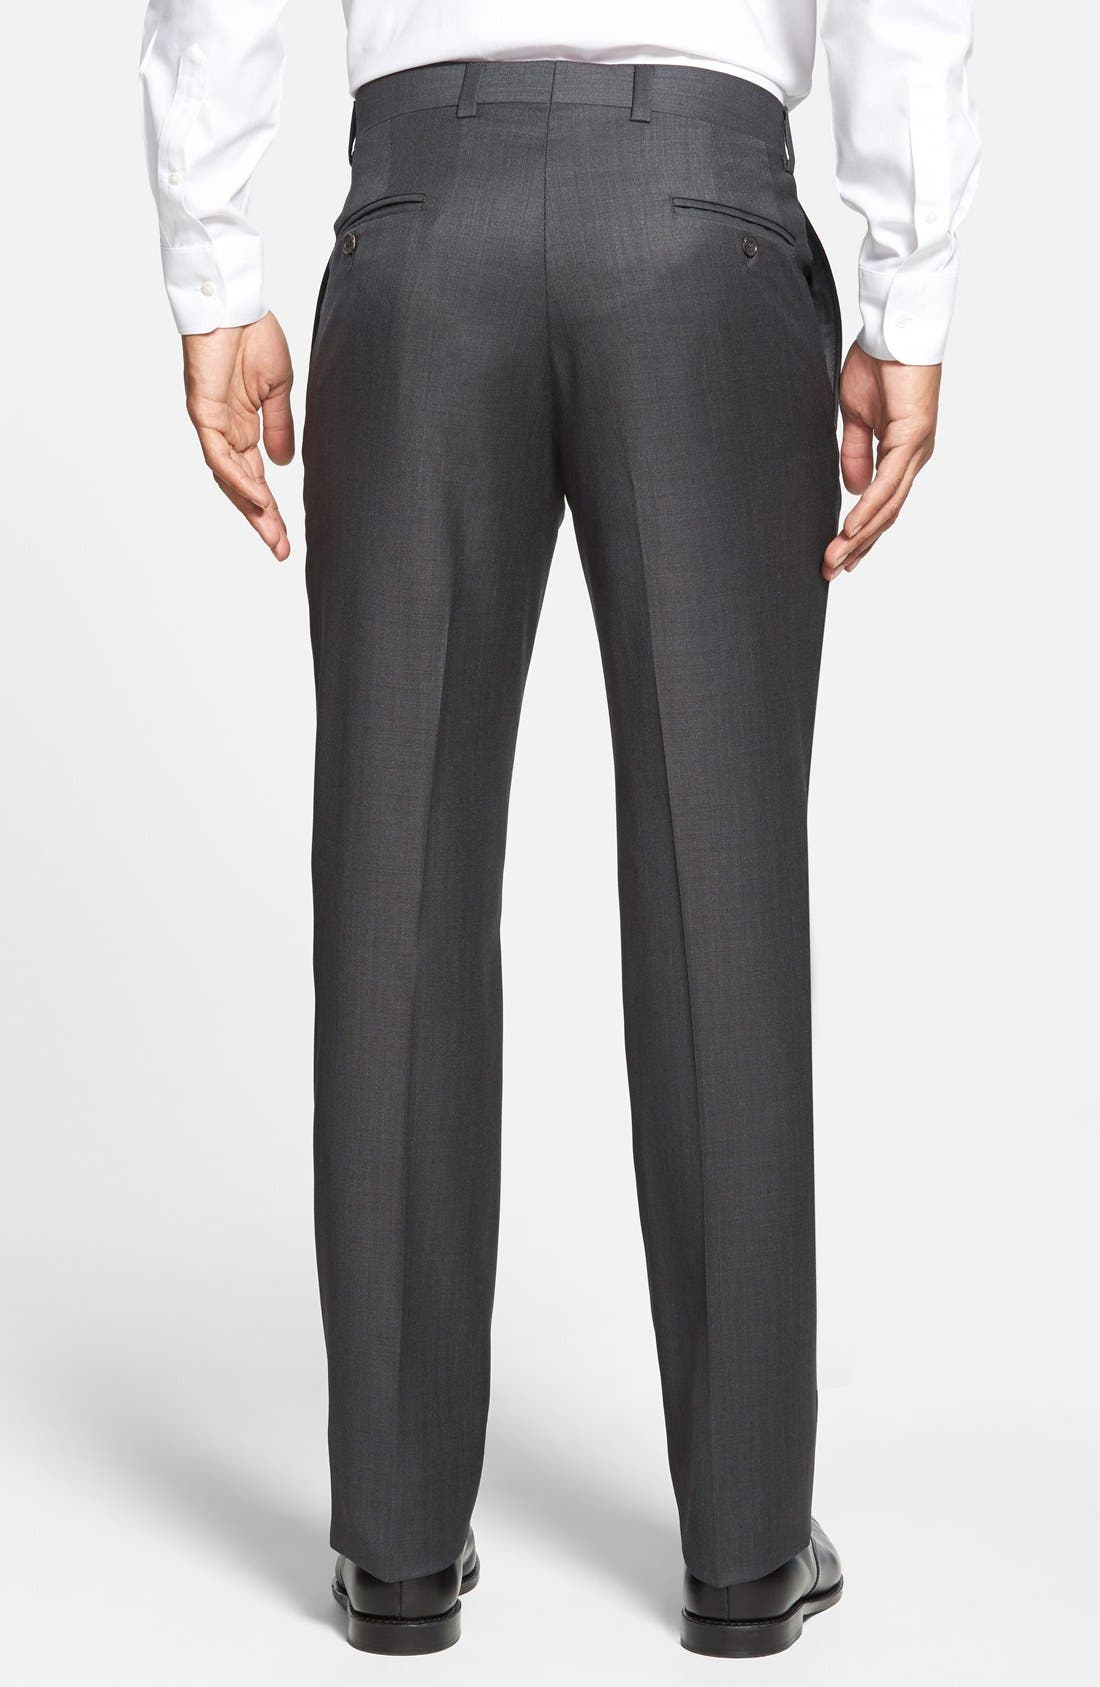 TED BAKER LONDON, Jefferson Flat Front Wool Trousers, Alternate thumbnail 7, color, MID GREY